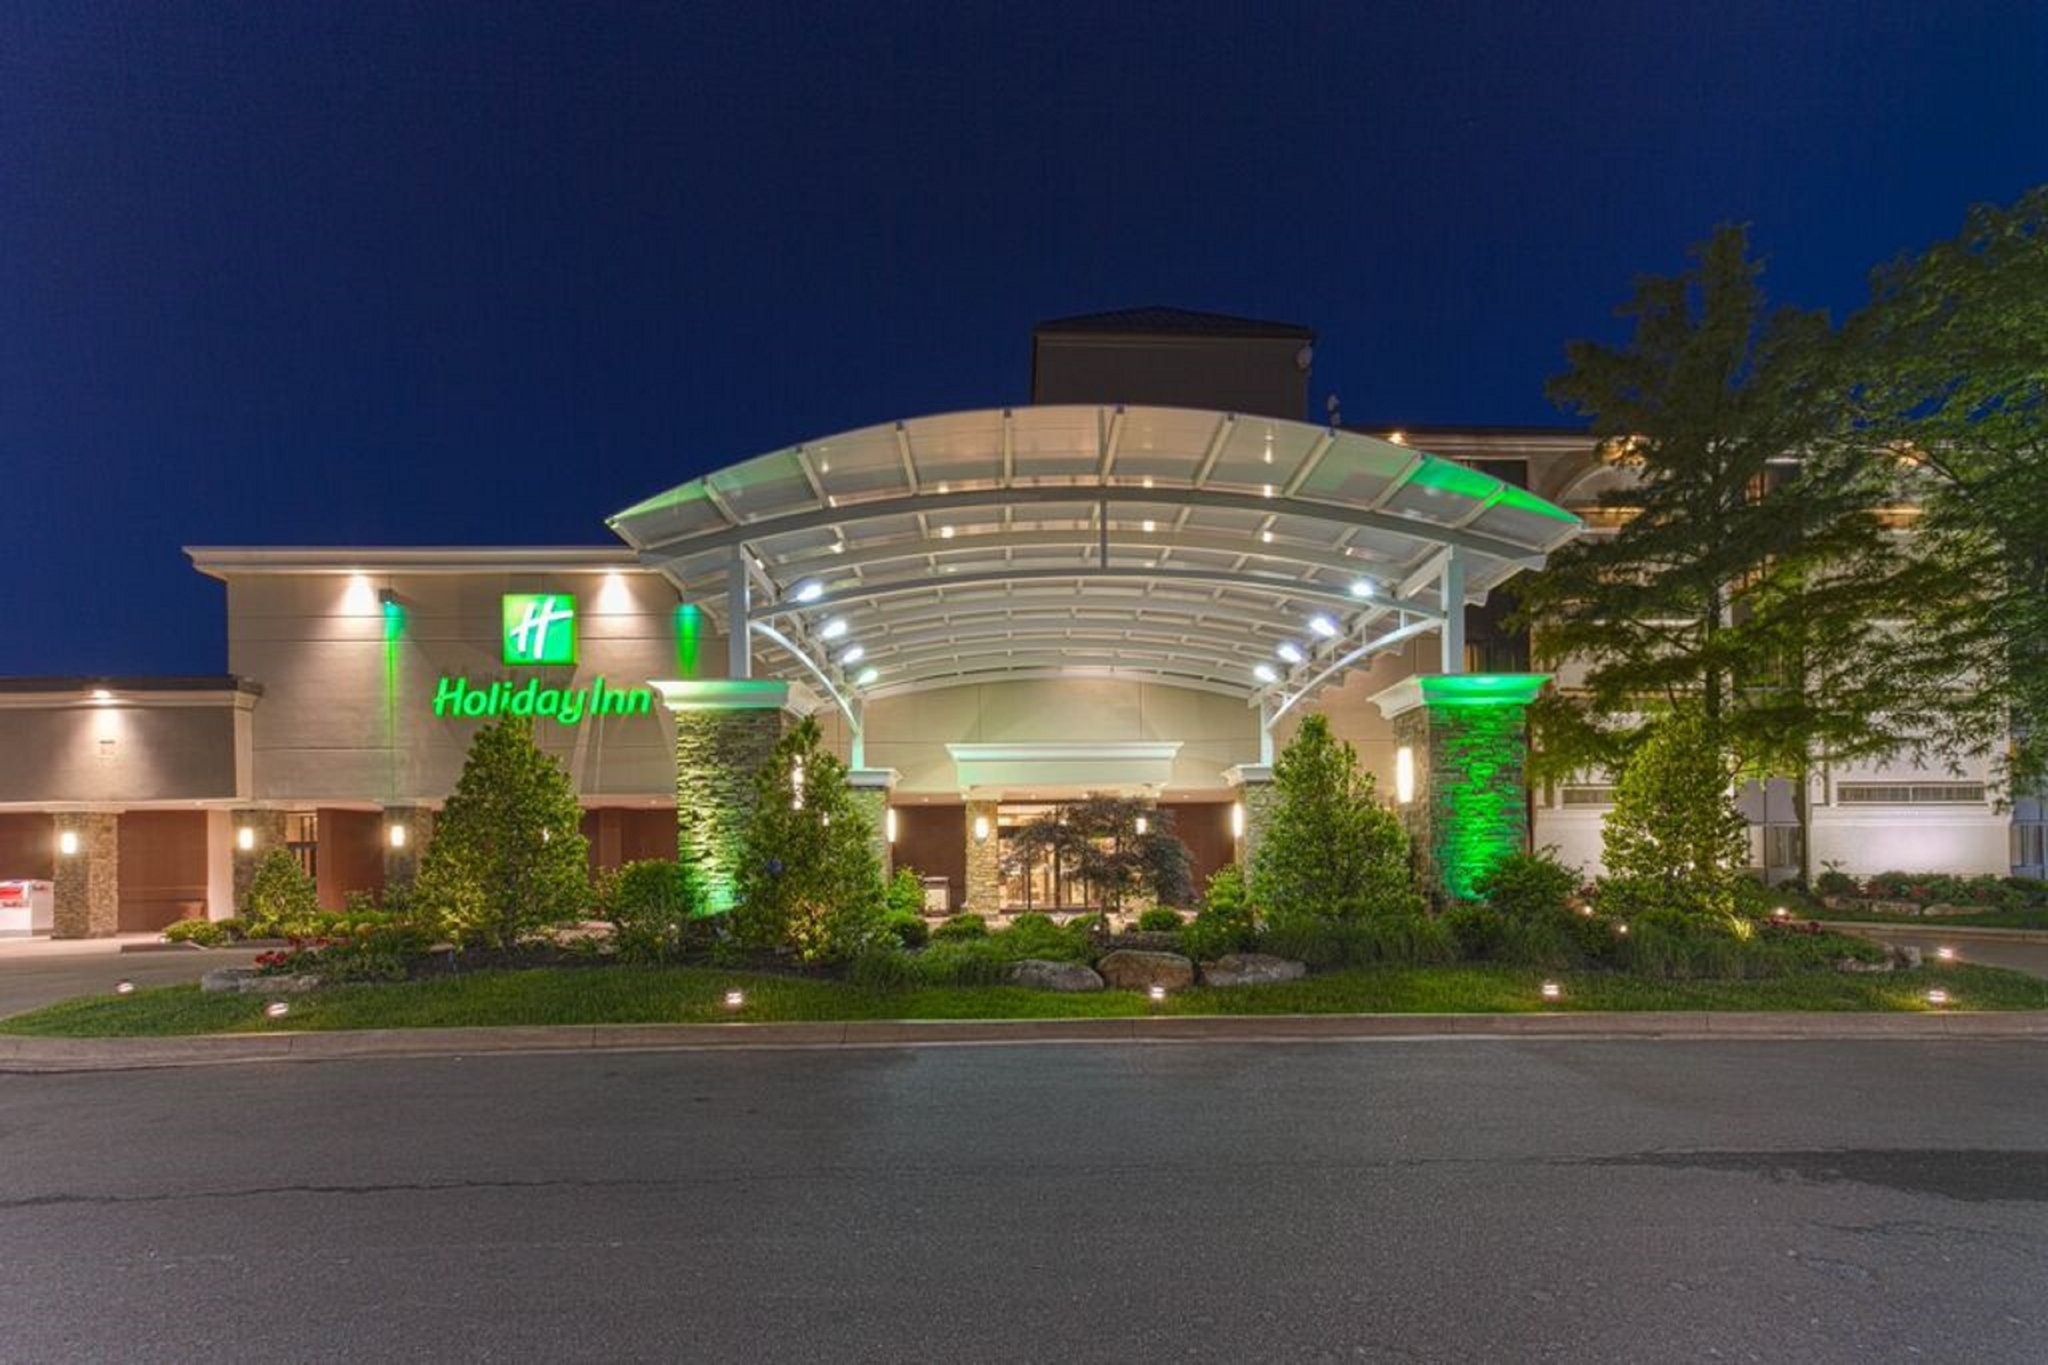 Holiday Inn Executive Center Hotel